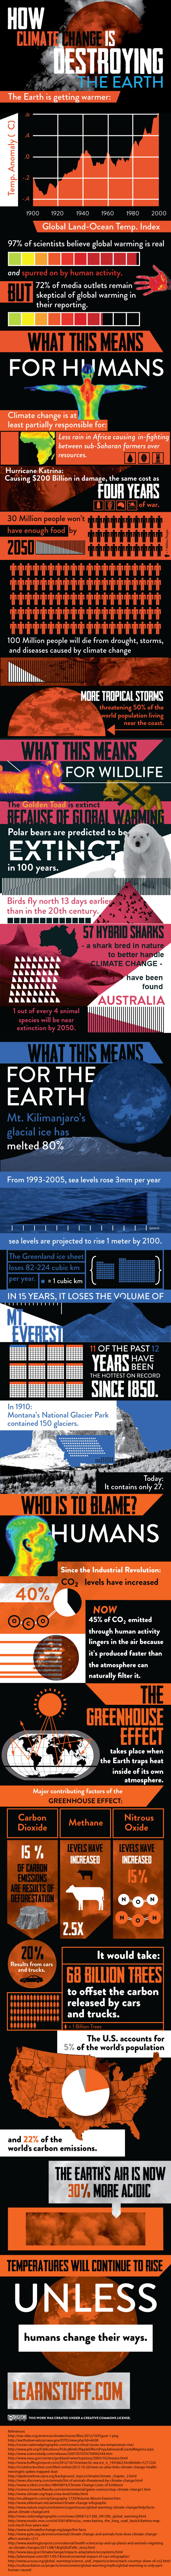 climate-change infographic